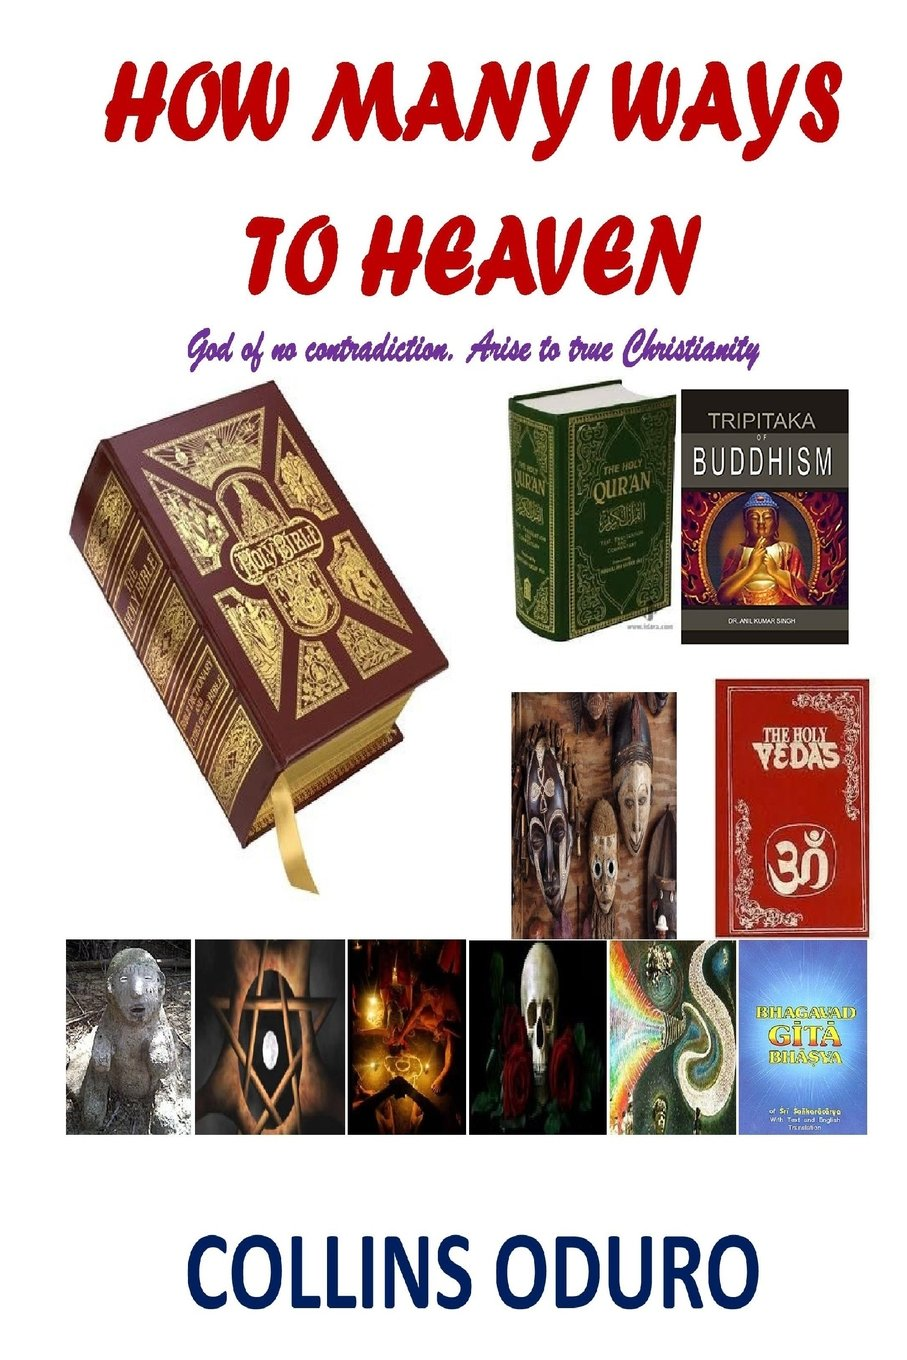 Amazon com how many ways to heaven god of no contradiction arise to true christianity 9781365860287 collins oduro books